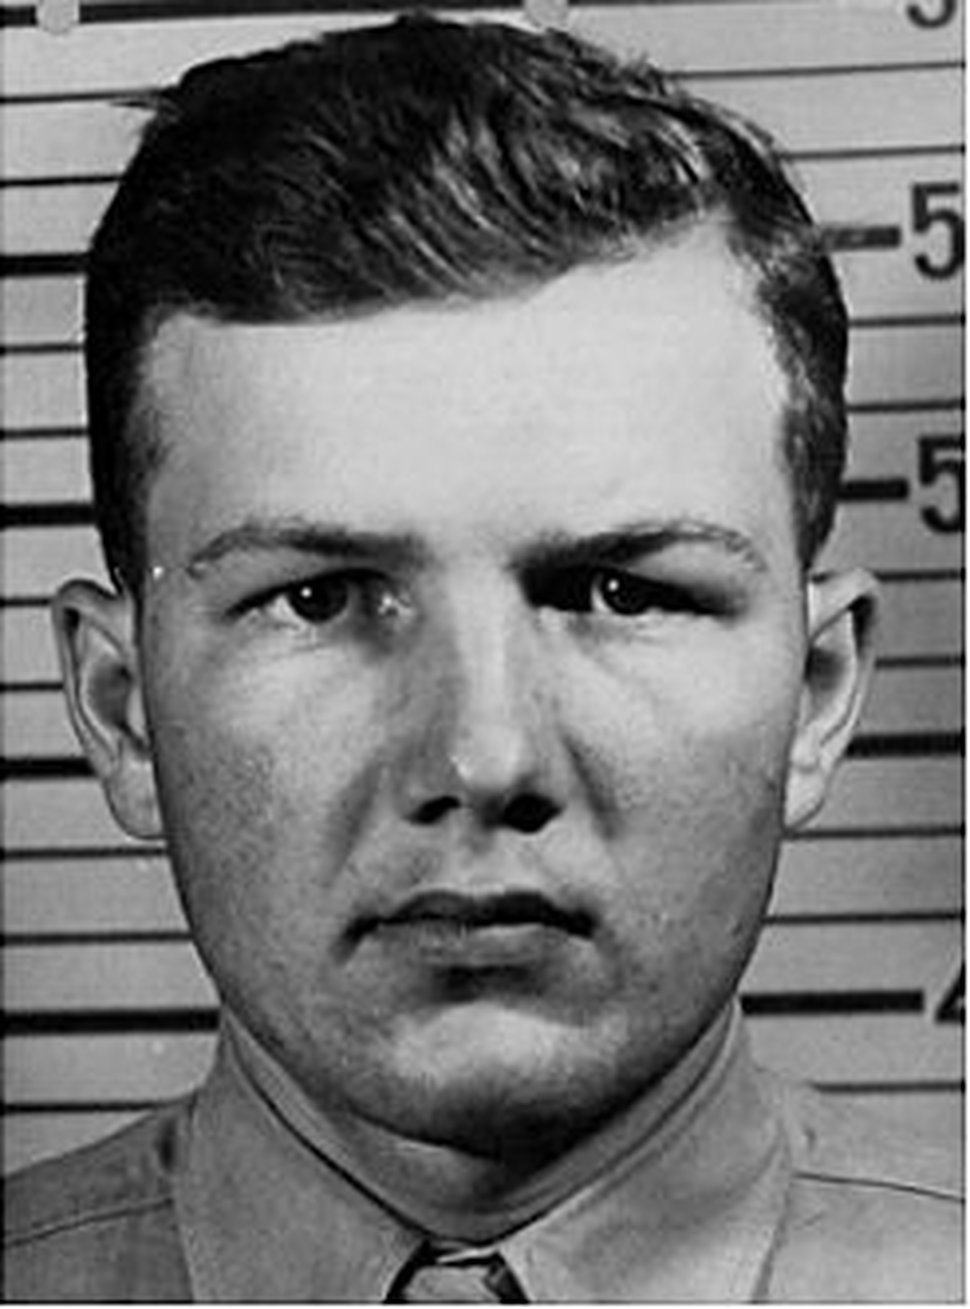 (Courtesy photo) Marine Corps Reserve Pfc. Robert J. Hatch, of Woods Cross, Utah, killed in action in 1943.